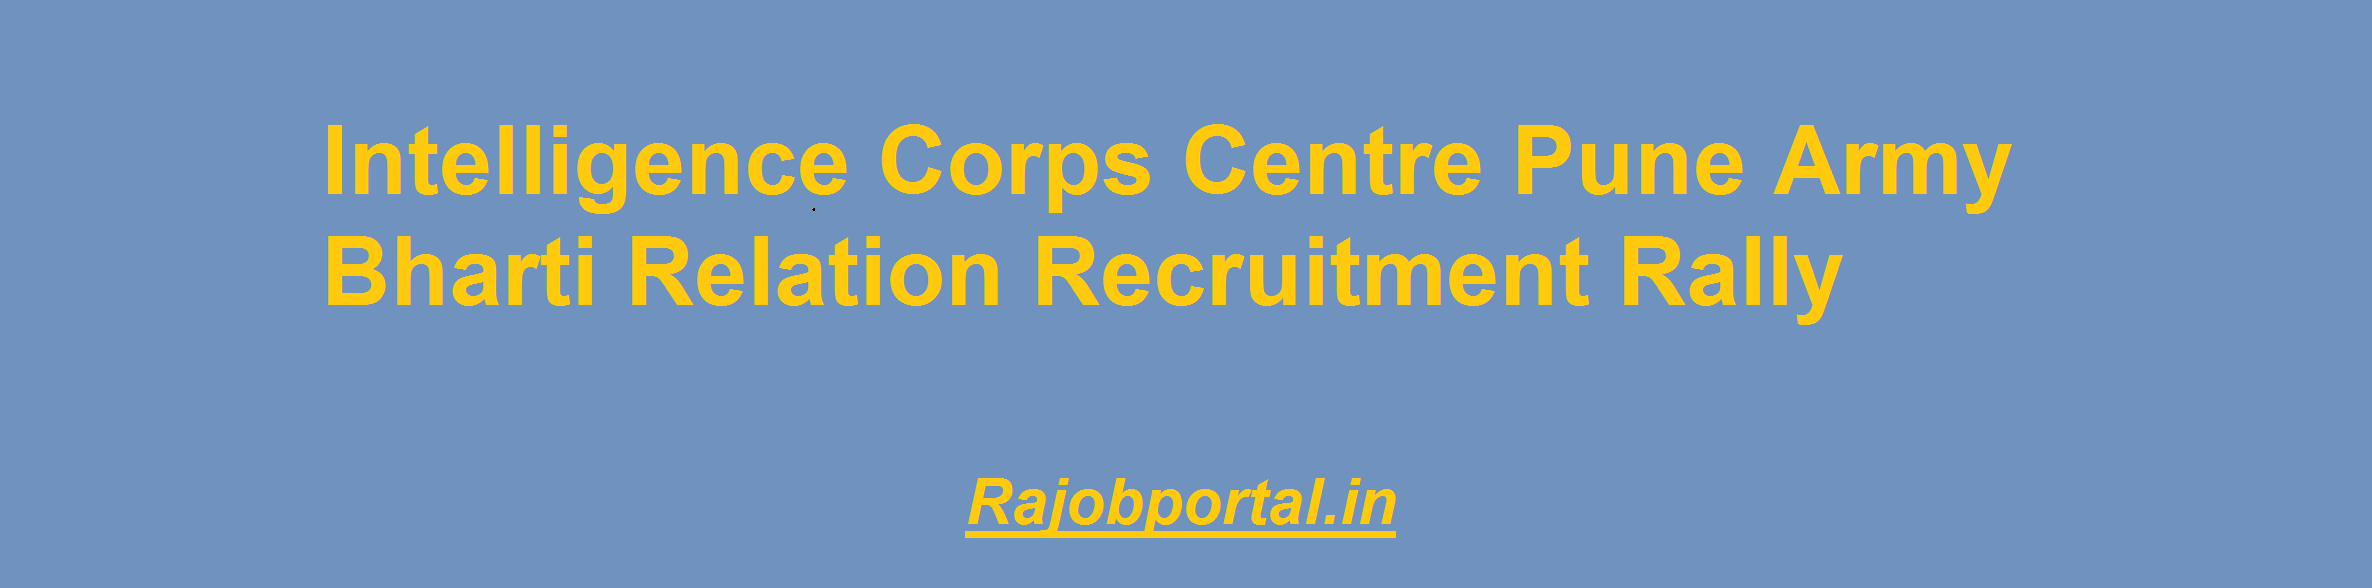 Intelligence Corps Centre Pune Army Bharti 2019